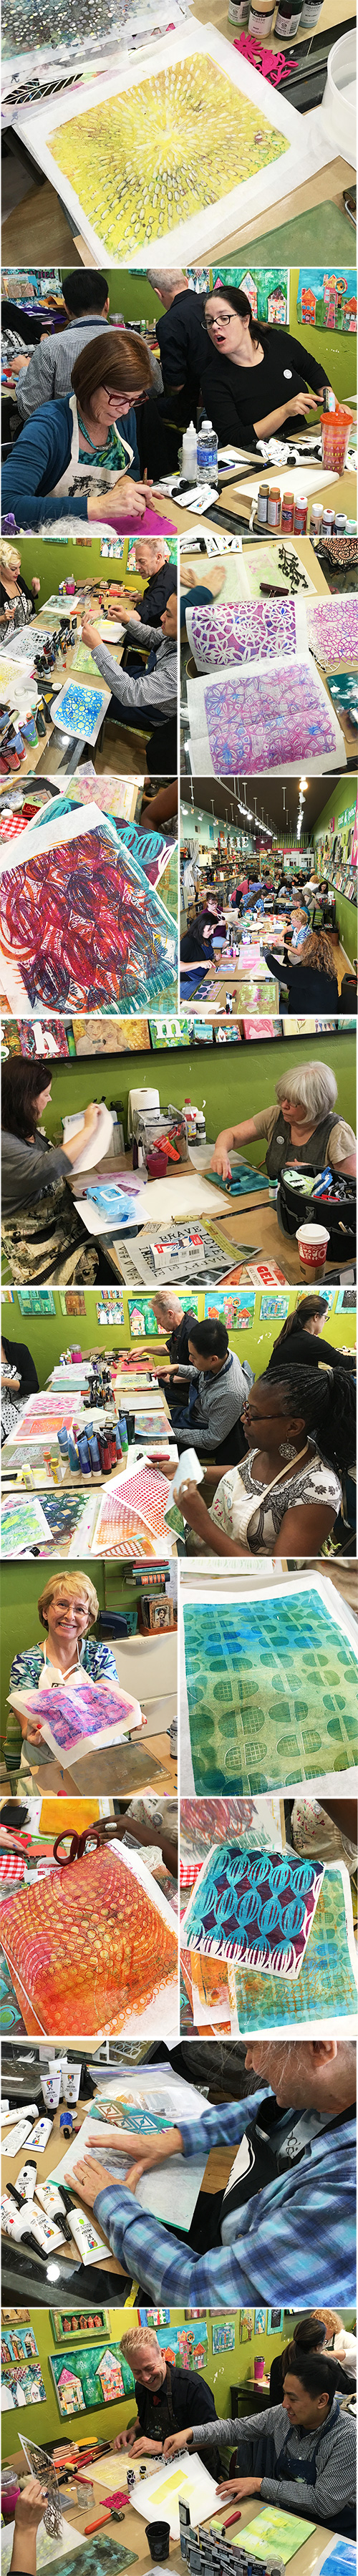 from the Balzer Designs Blog: Three Classes at A Work of Heart in San Jose